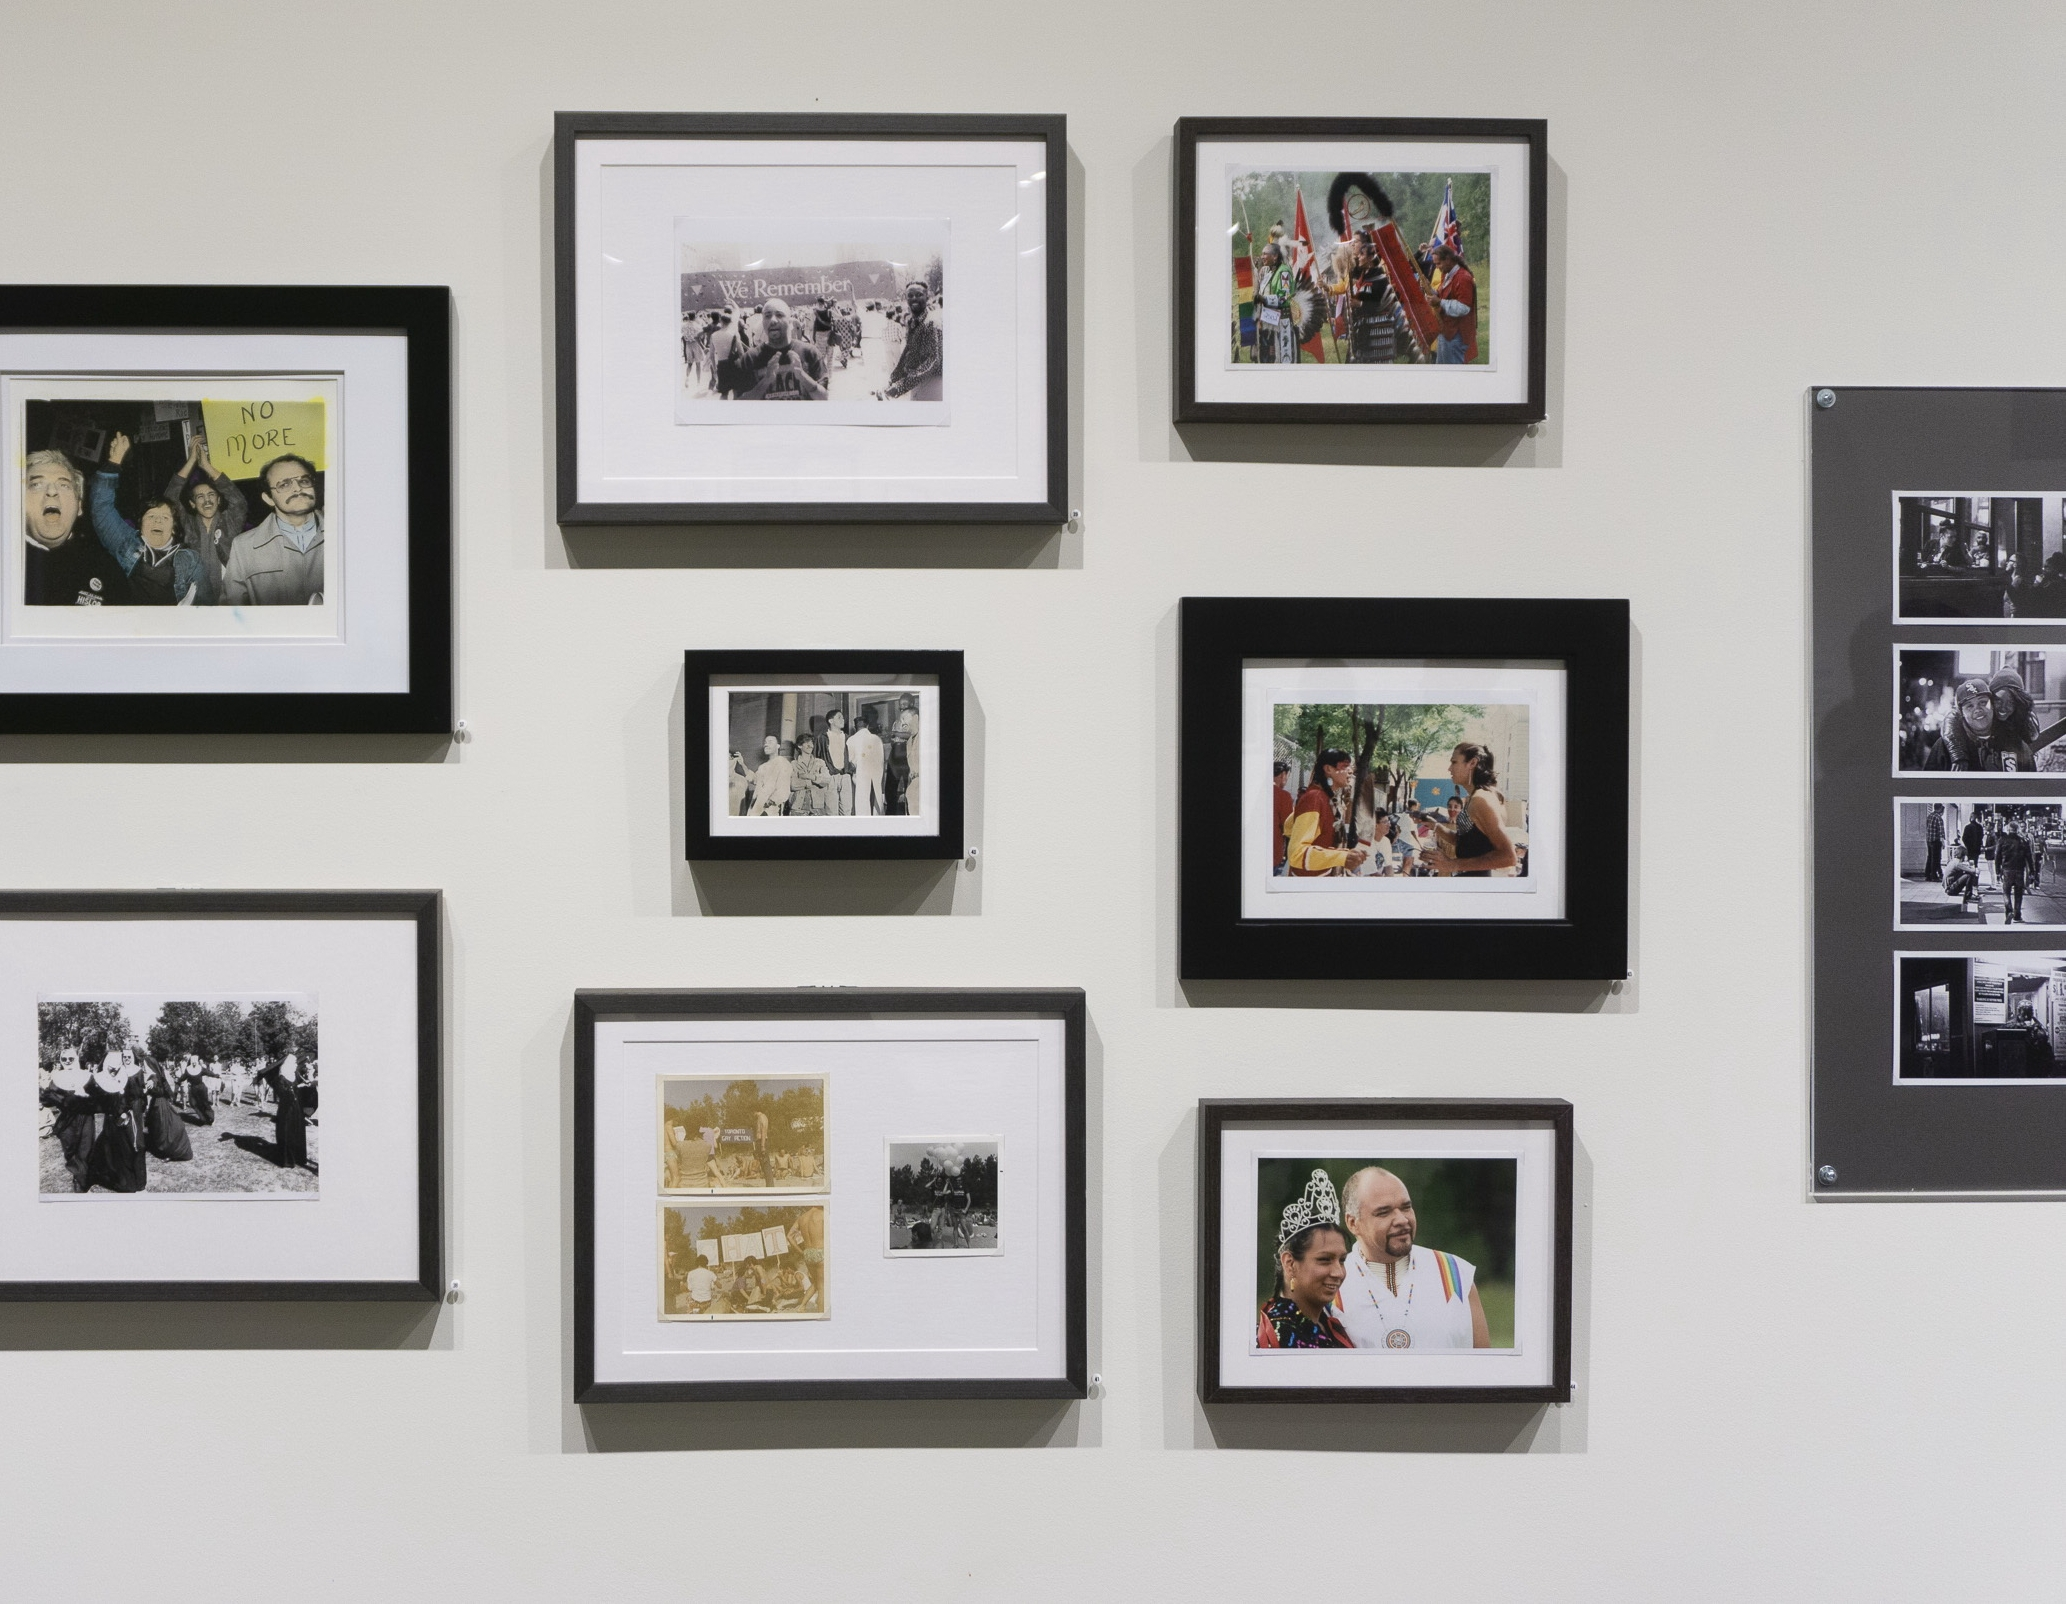 Installation Of Queering Family Photography At Stephen Bulger Gallery Photo